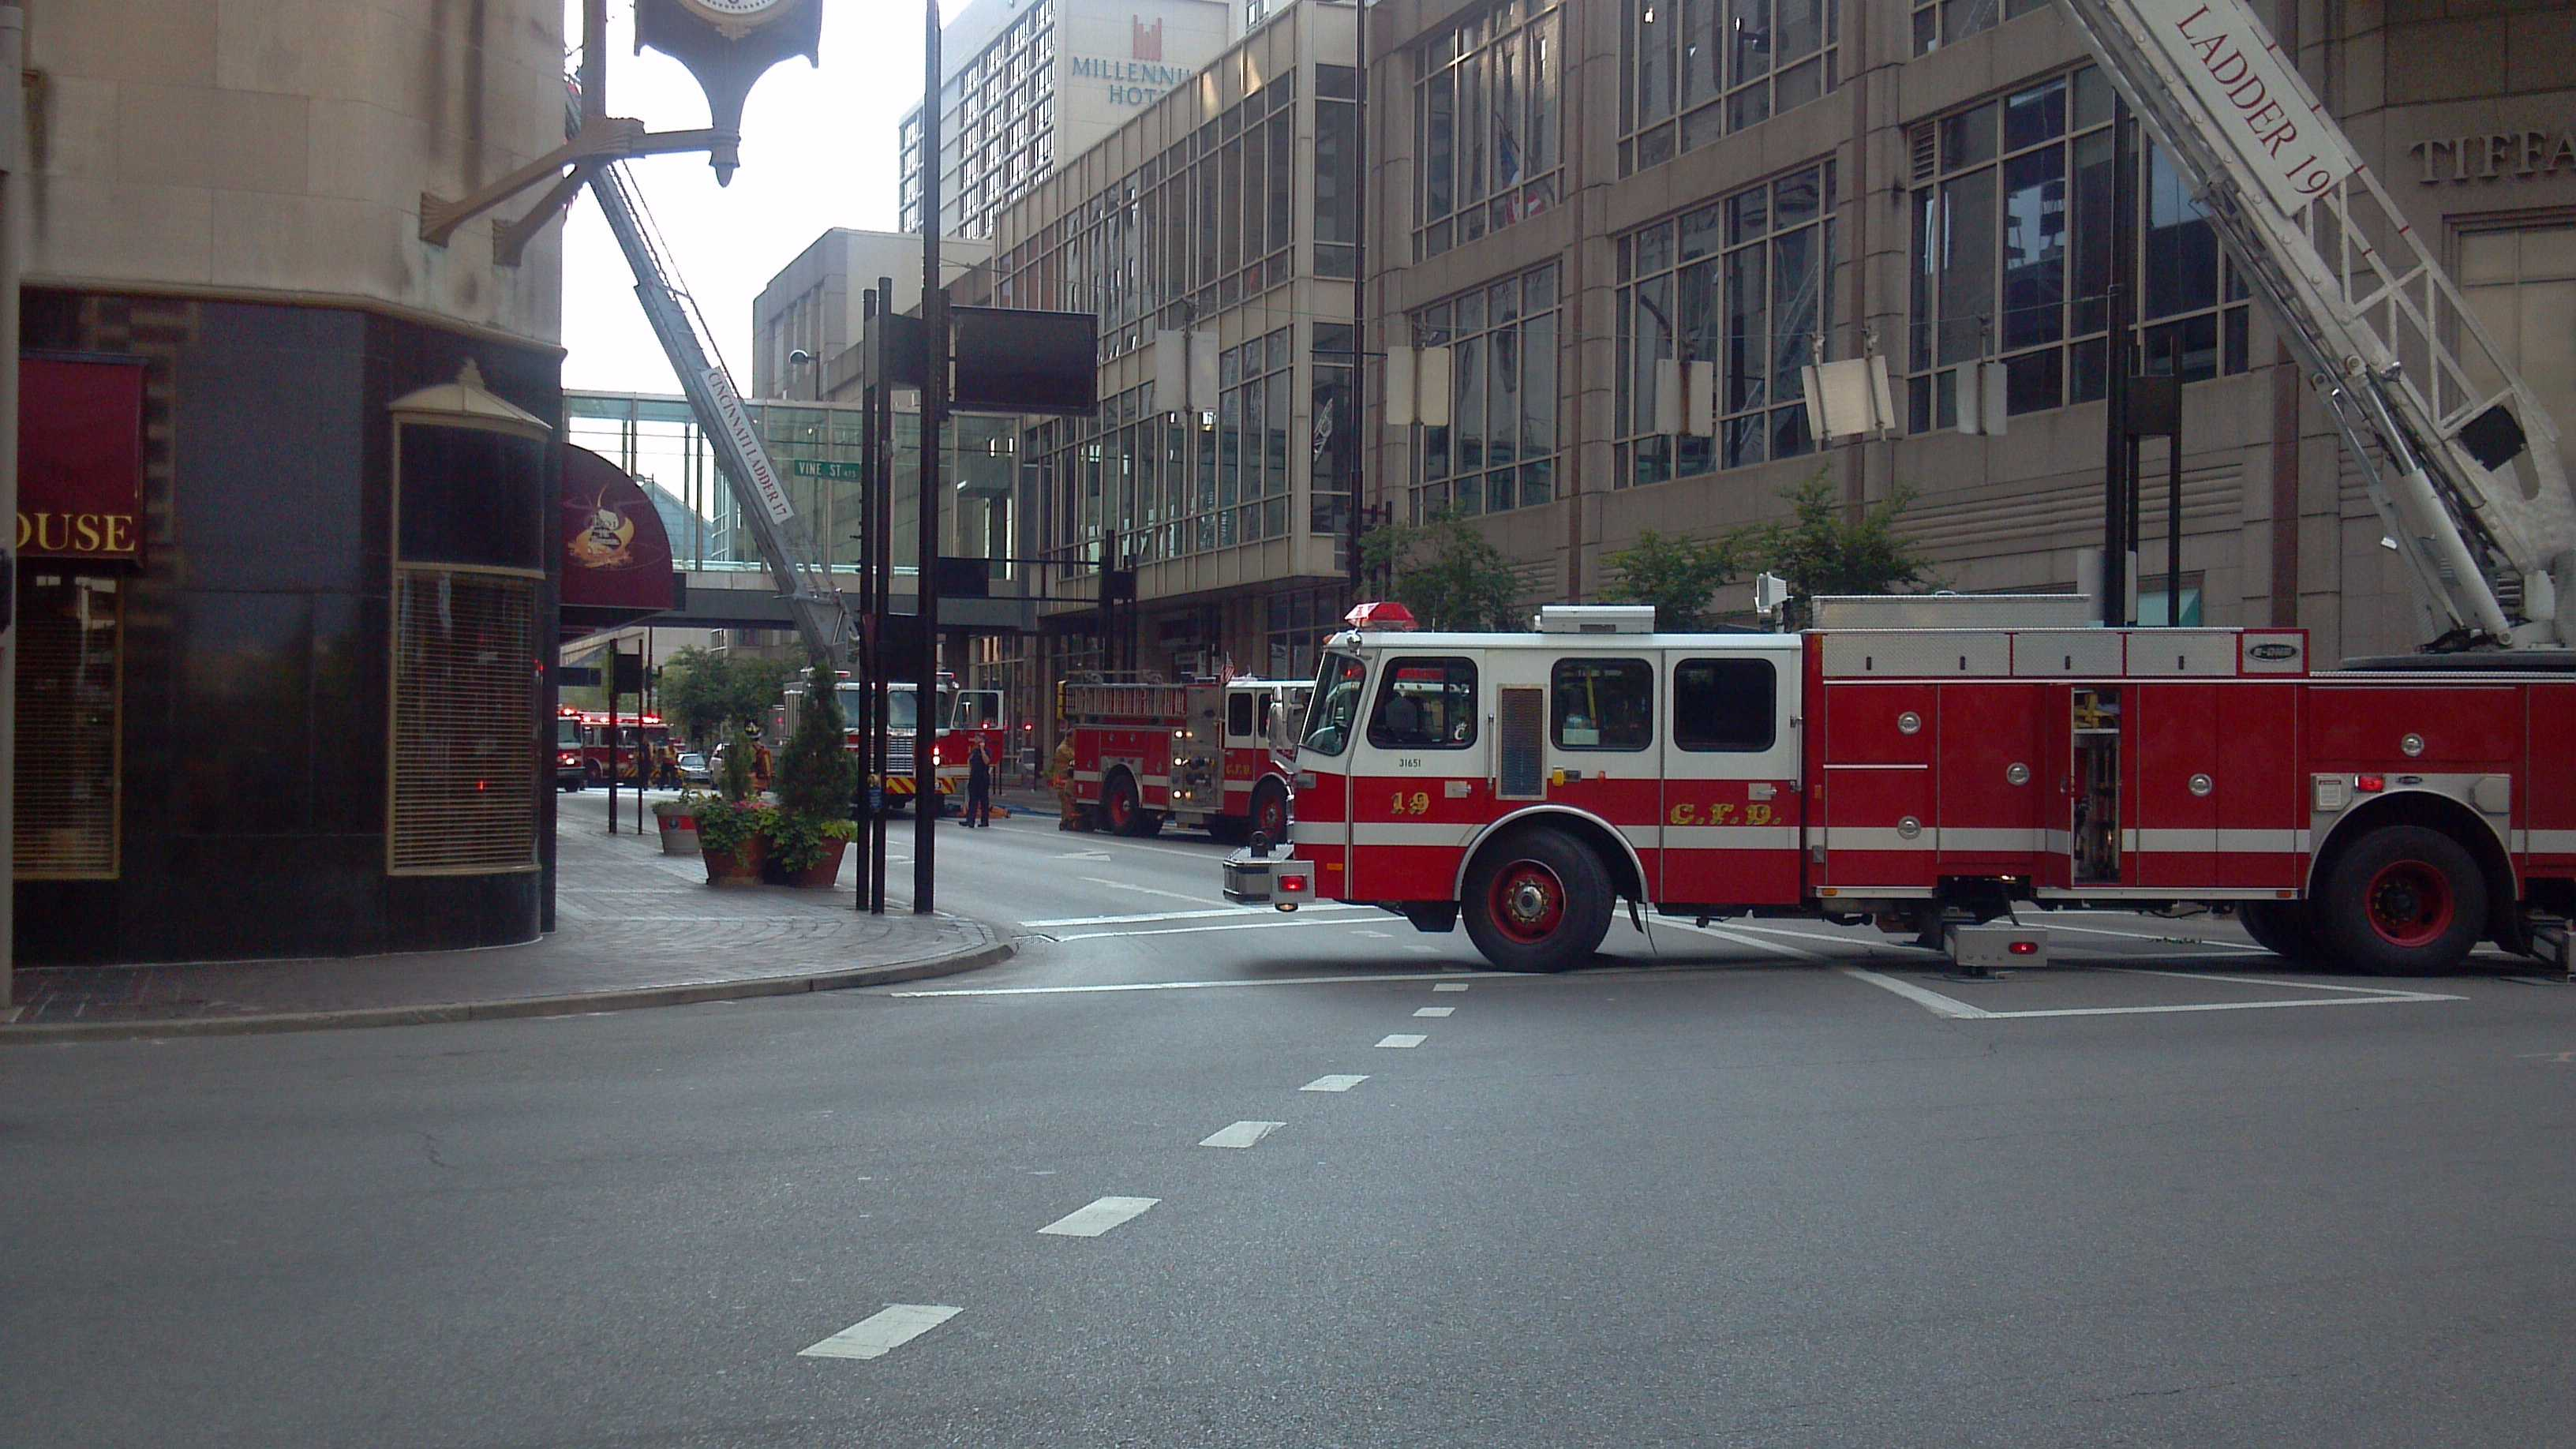 Fire crews evacuate Carew Tower after smoke is seen coming from the building.